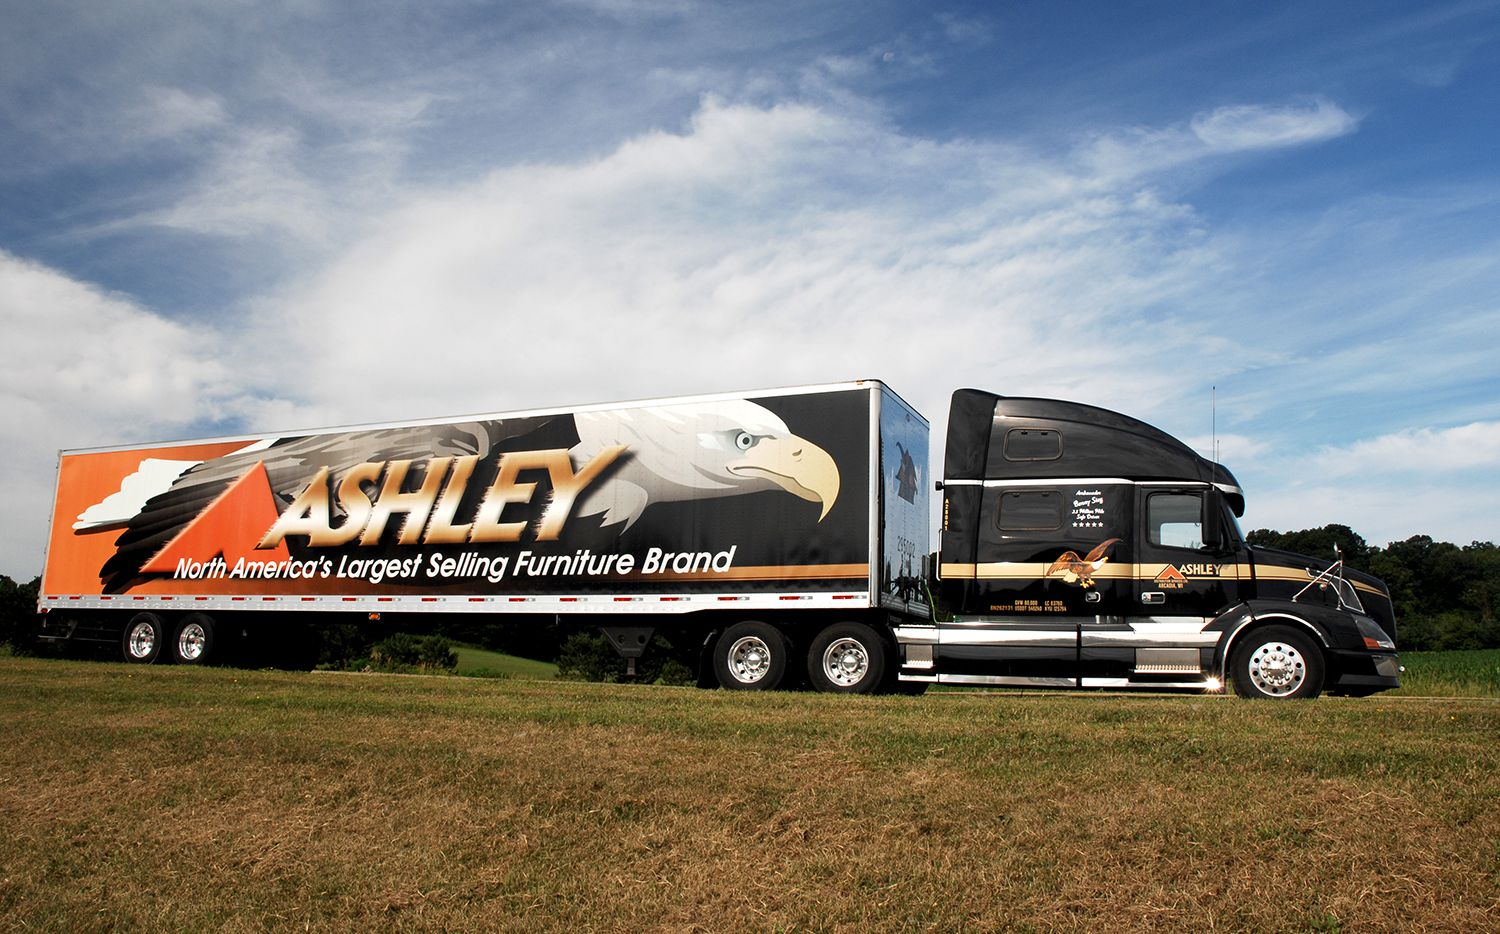 Ashley Furniture will build a $65 million distribution center in Mesquite.